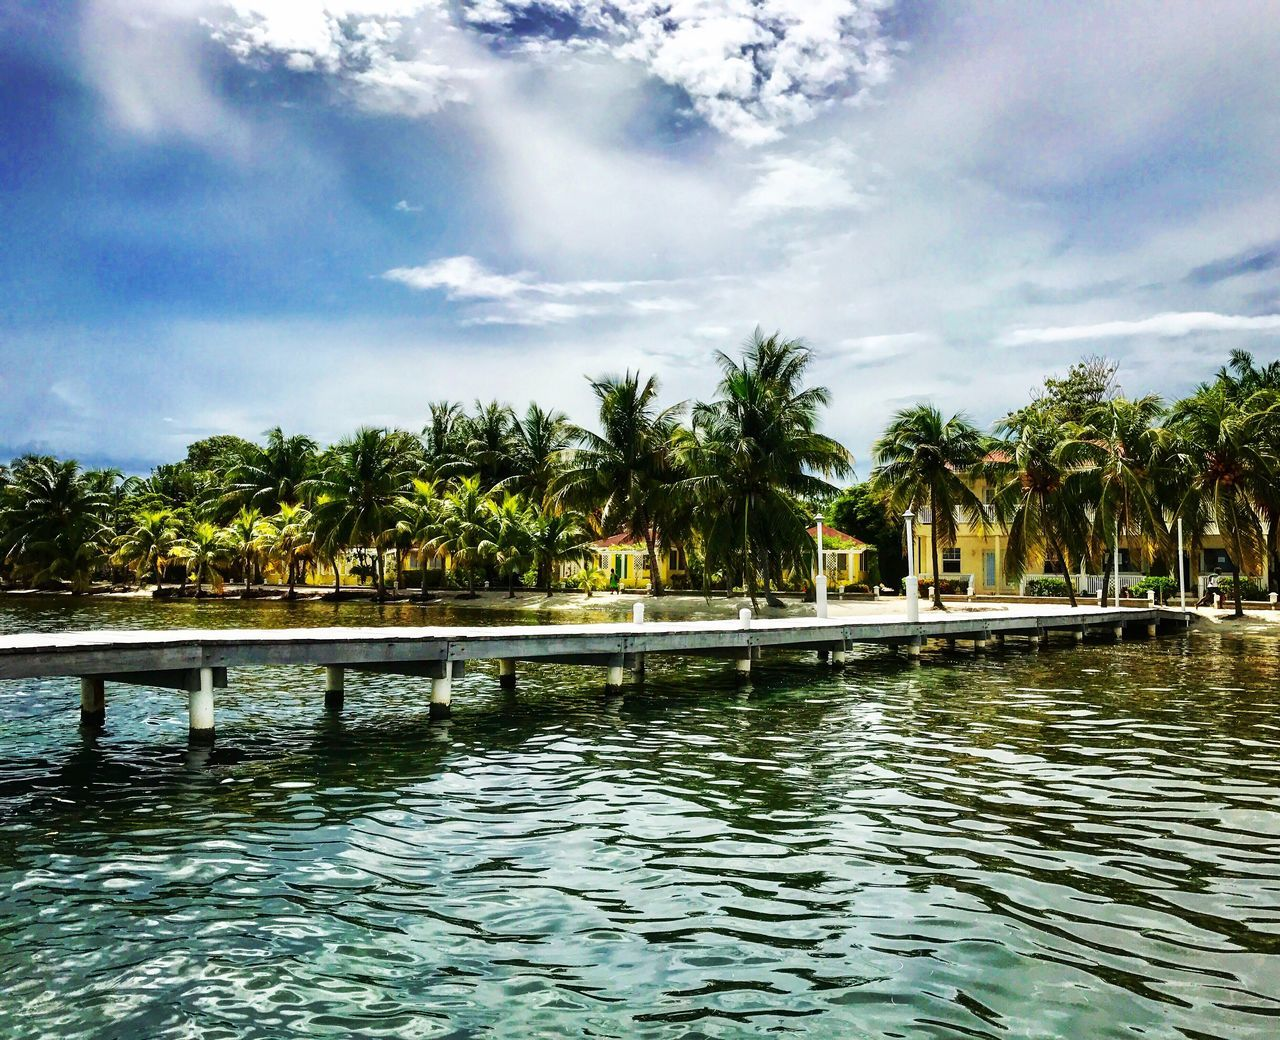 water, palm tree, swimming pool, tree, sky, waterfront, nature, tranquility, outdoors, beauty in nature, no people, day